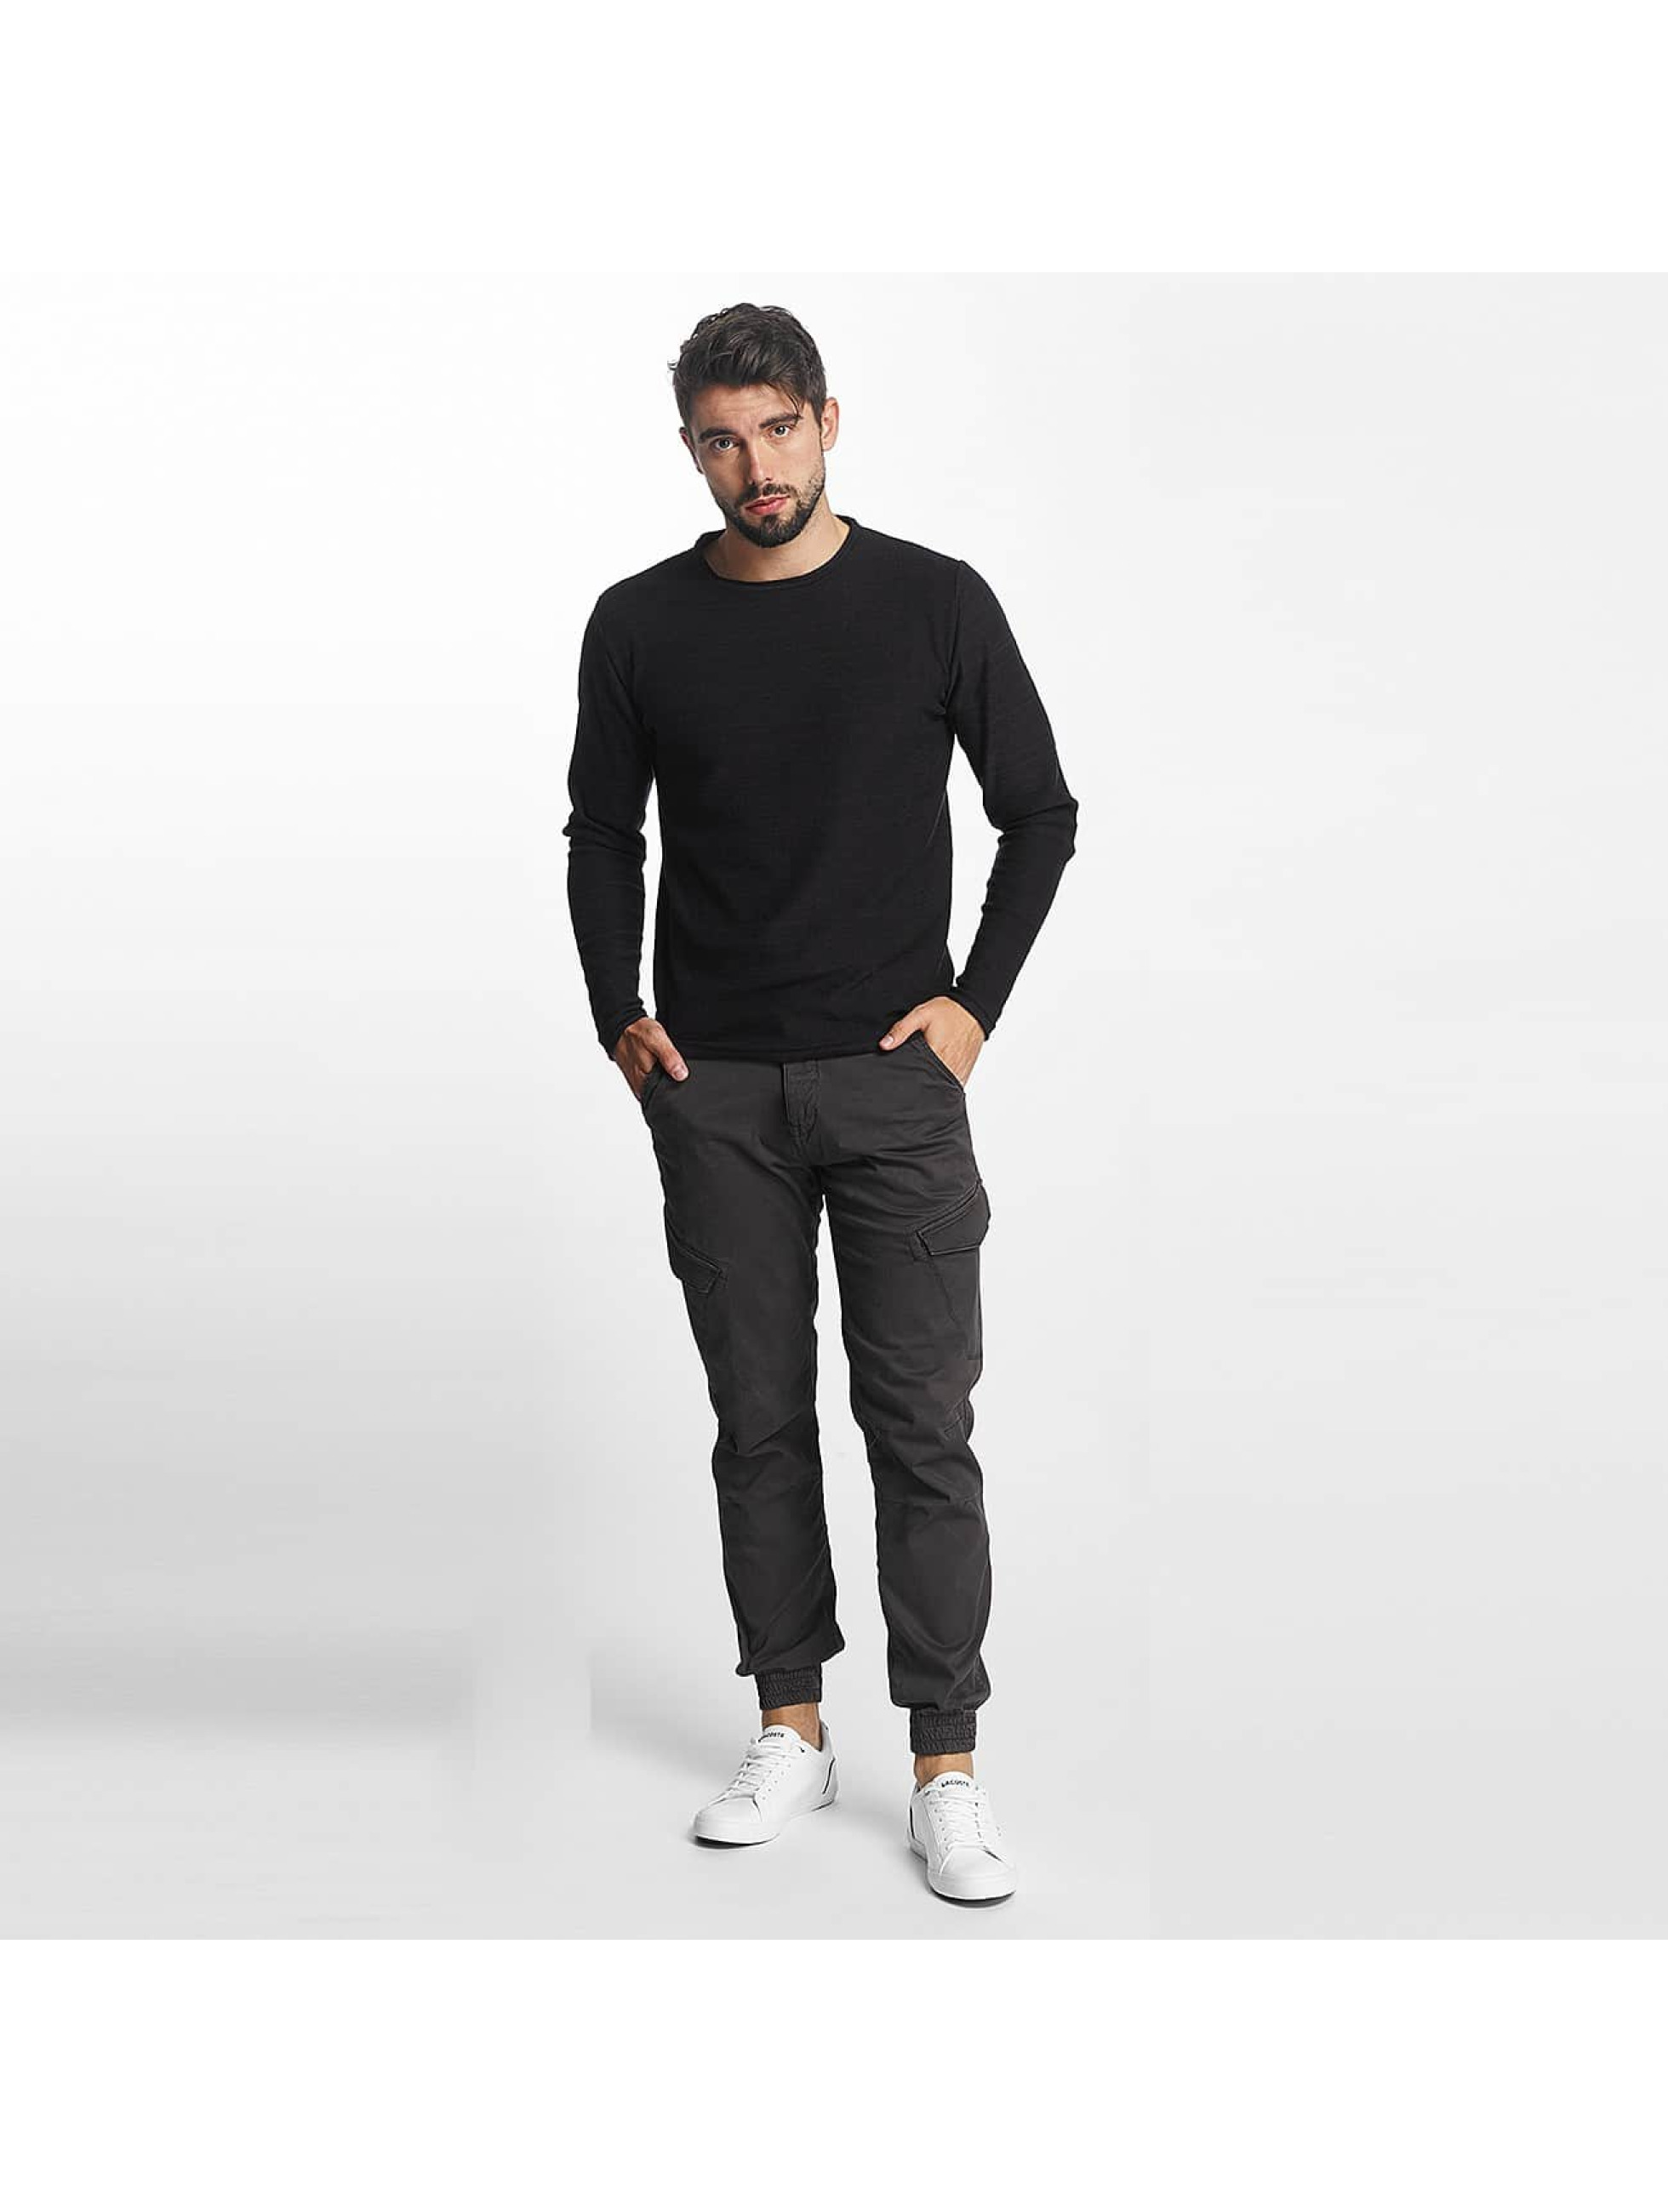 SHINE Original Cargobroek Slim grijs